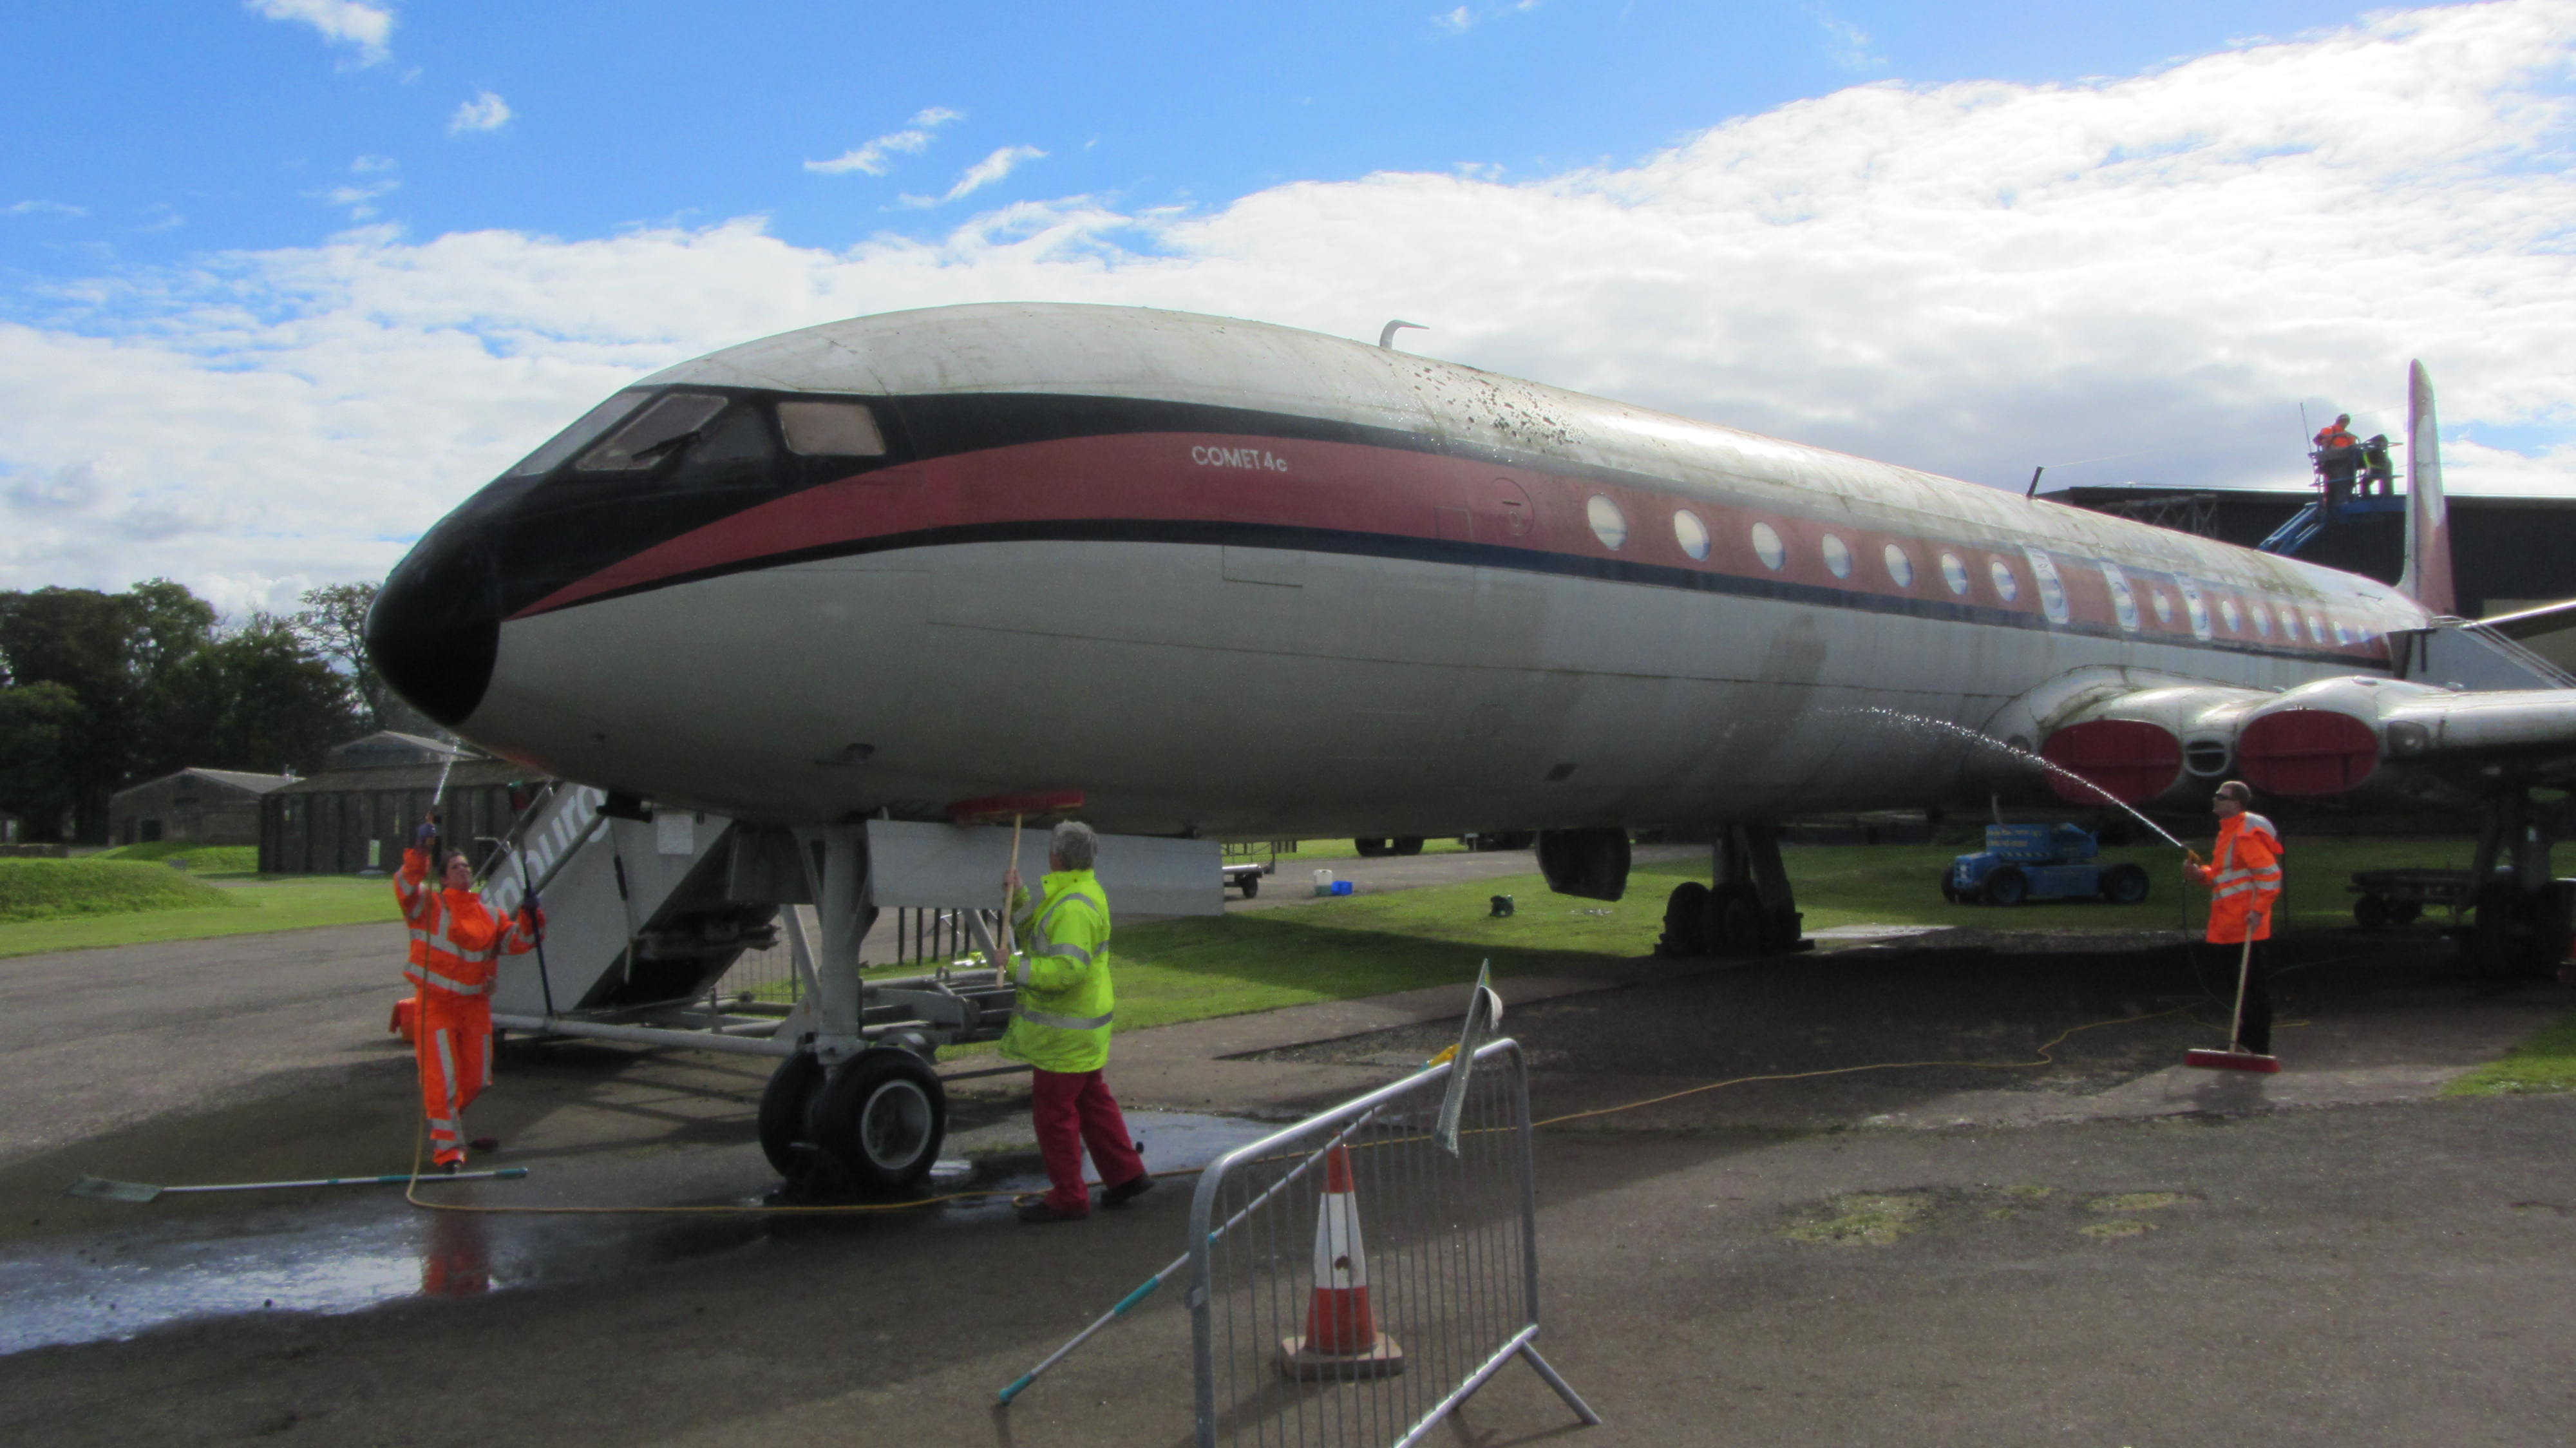 The Comet aircraft being cleaned at National Museum of Flight